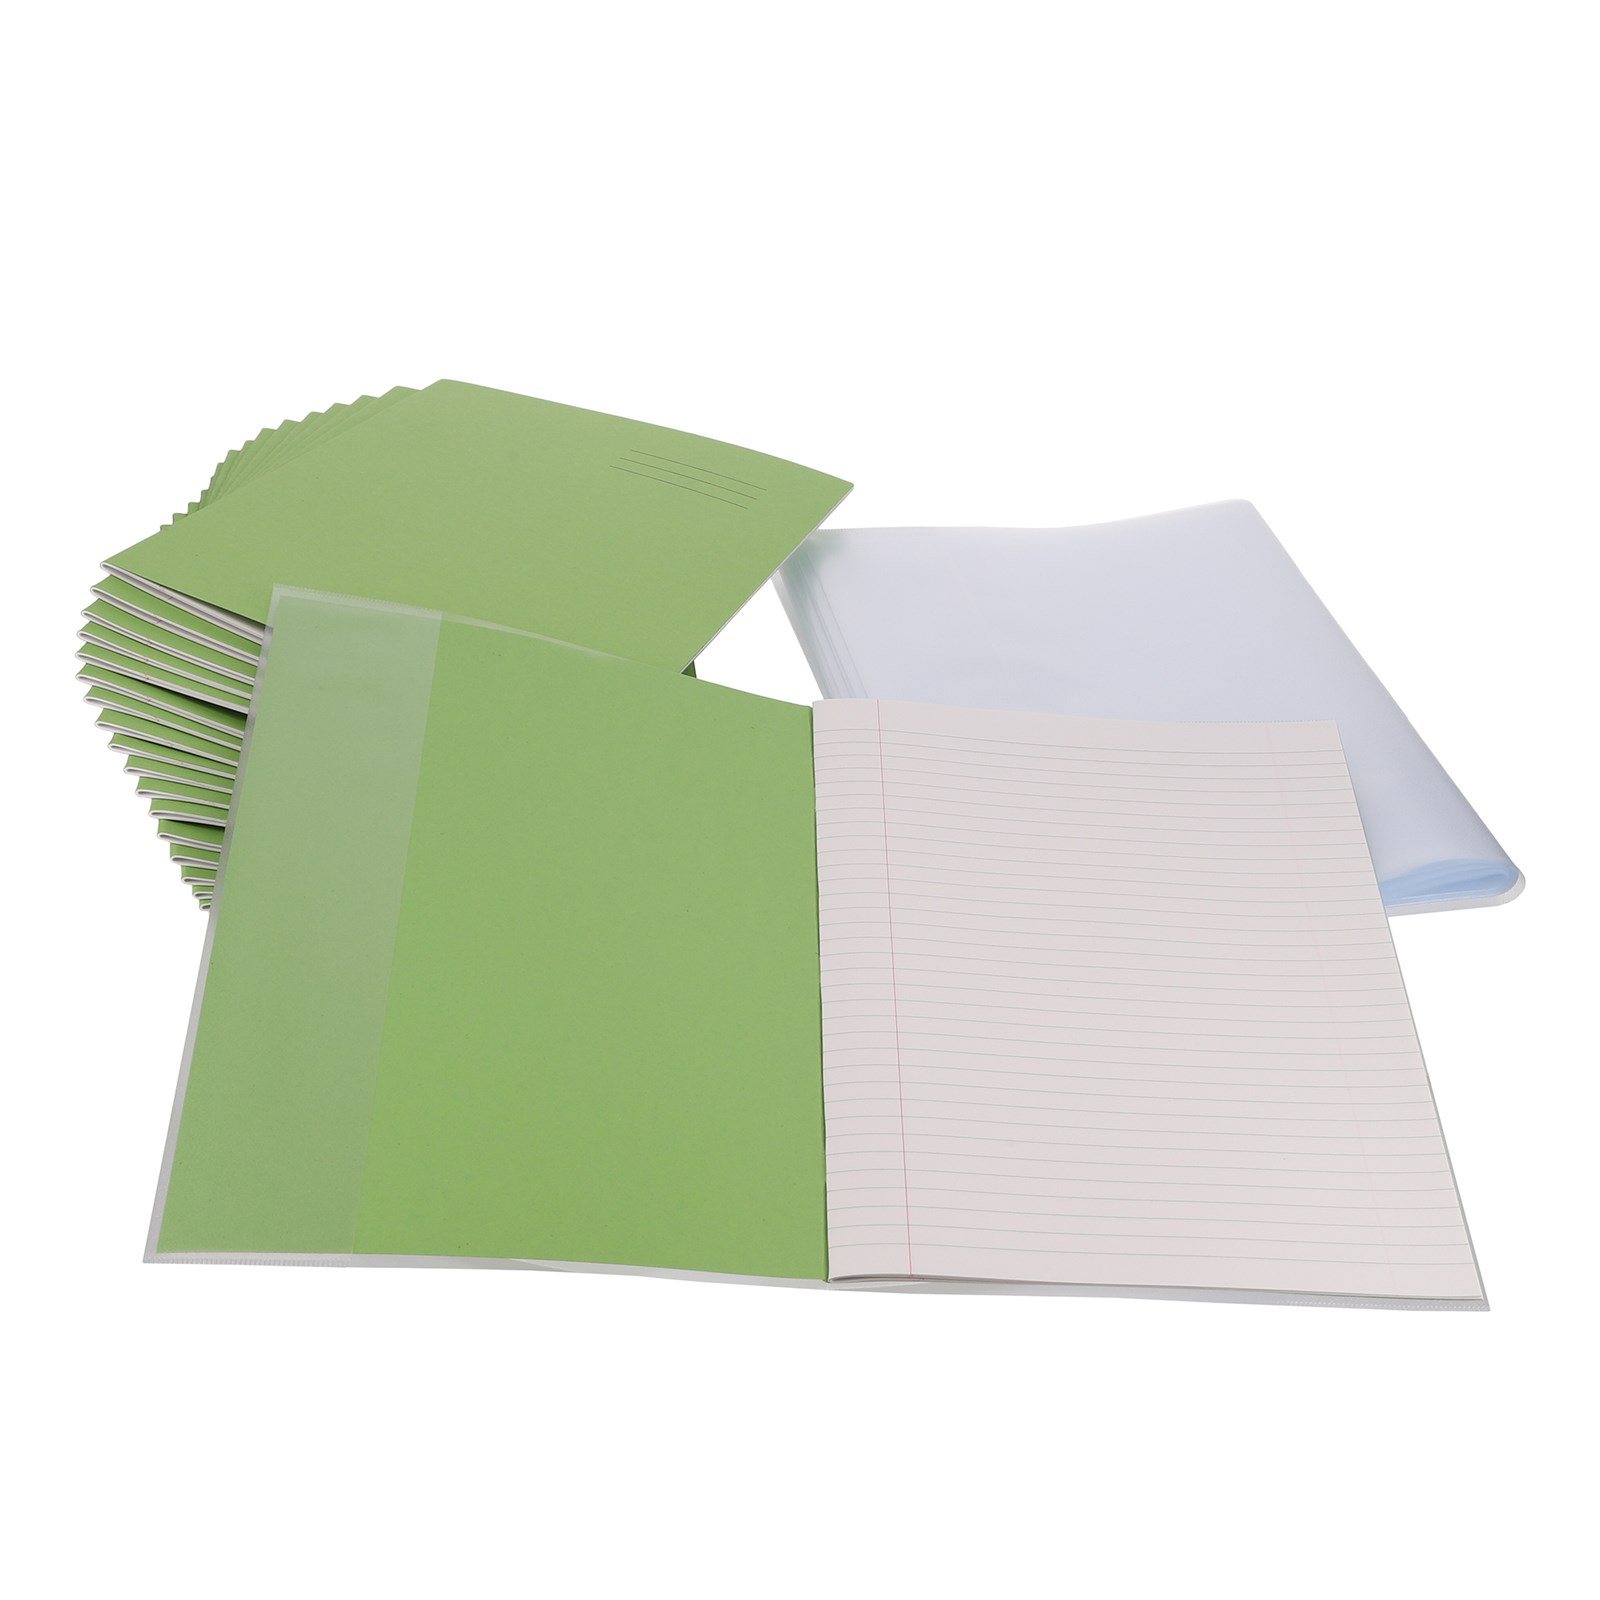 Classmates Light Green A4 Exercise Book 32-Page, 8mm Ruled With Margin Pack of 100 & Clear A4 Book Covering Pack of 100 **BUNDLE OFFER - SAVE UP TO